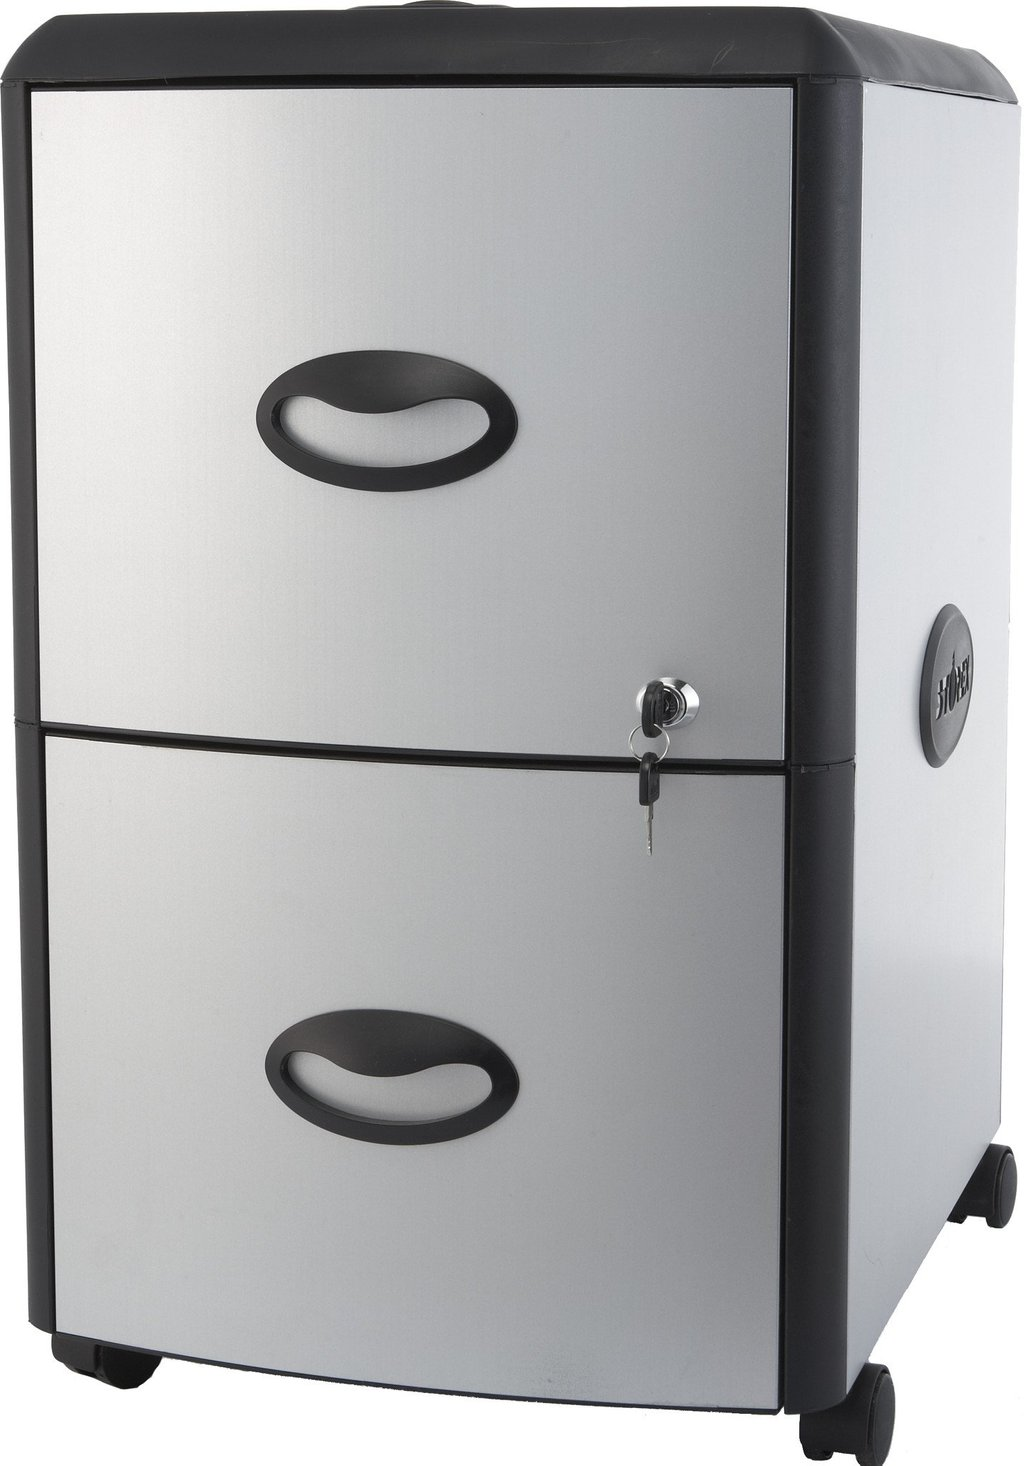 File Cabinet Storex Guideline To Install File Cabinet Locks